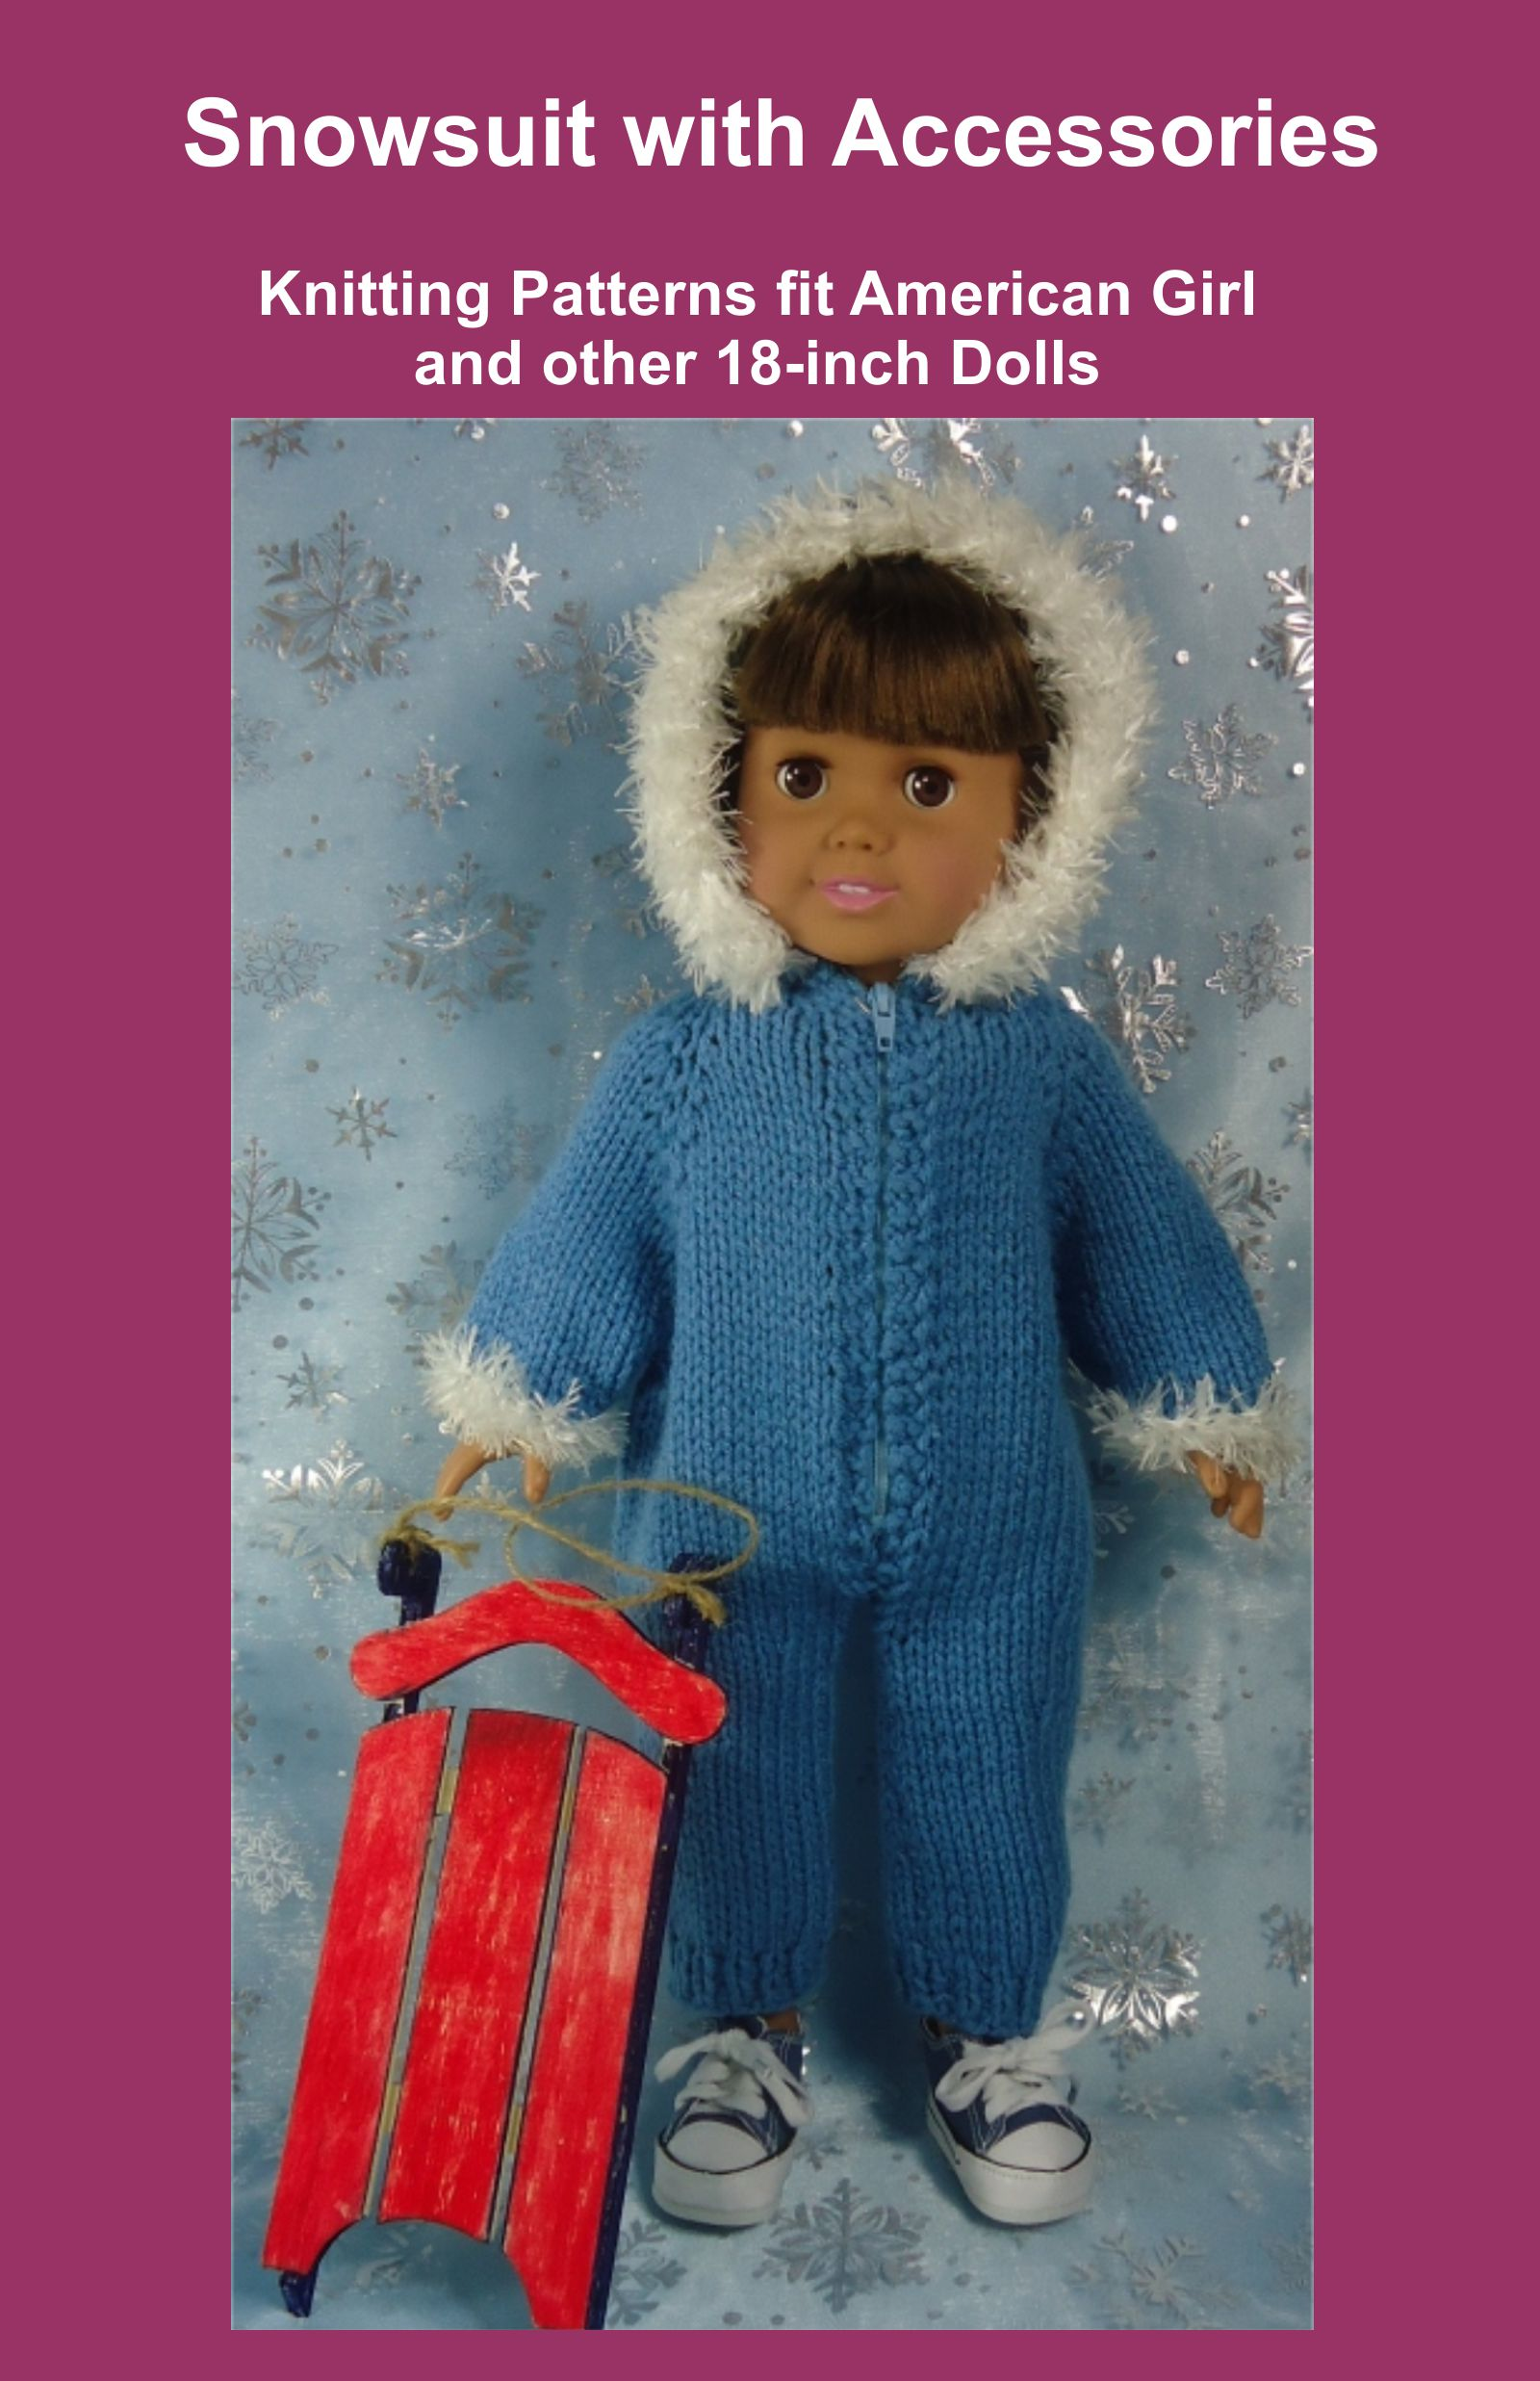 Smashwords Snowsuit With Accessories Knitting Patterns Fit